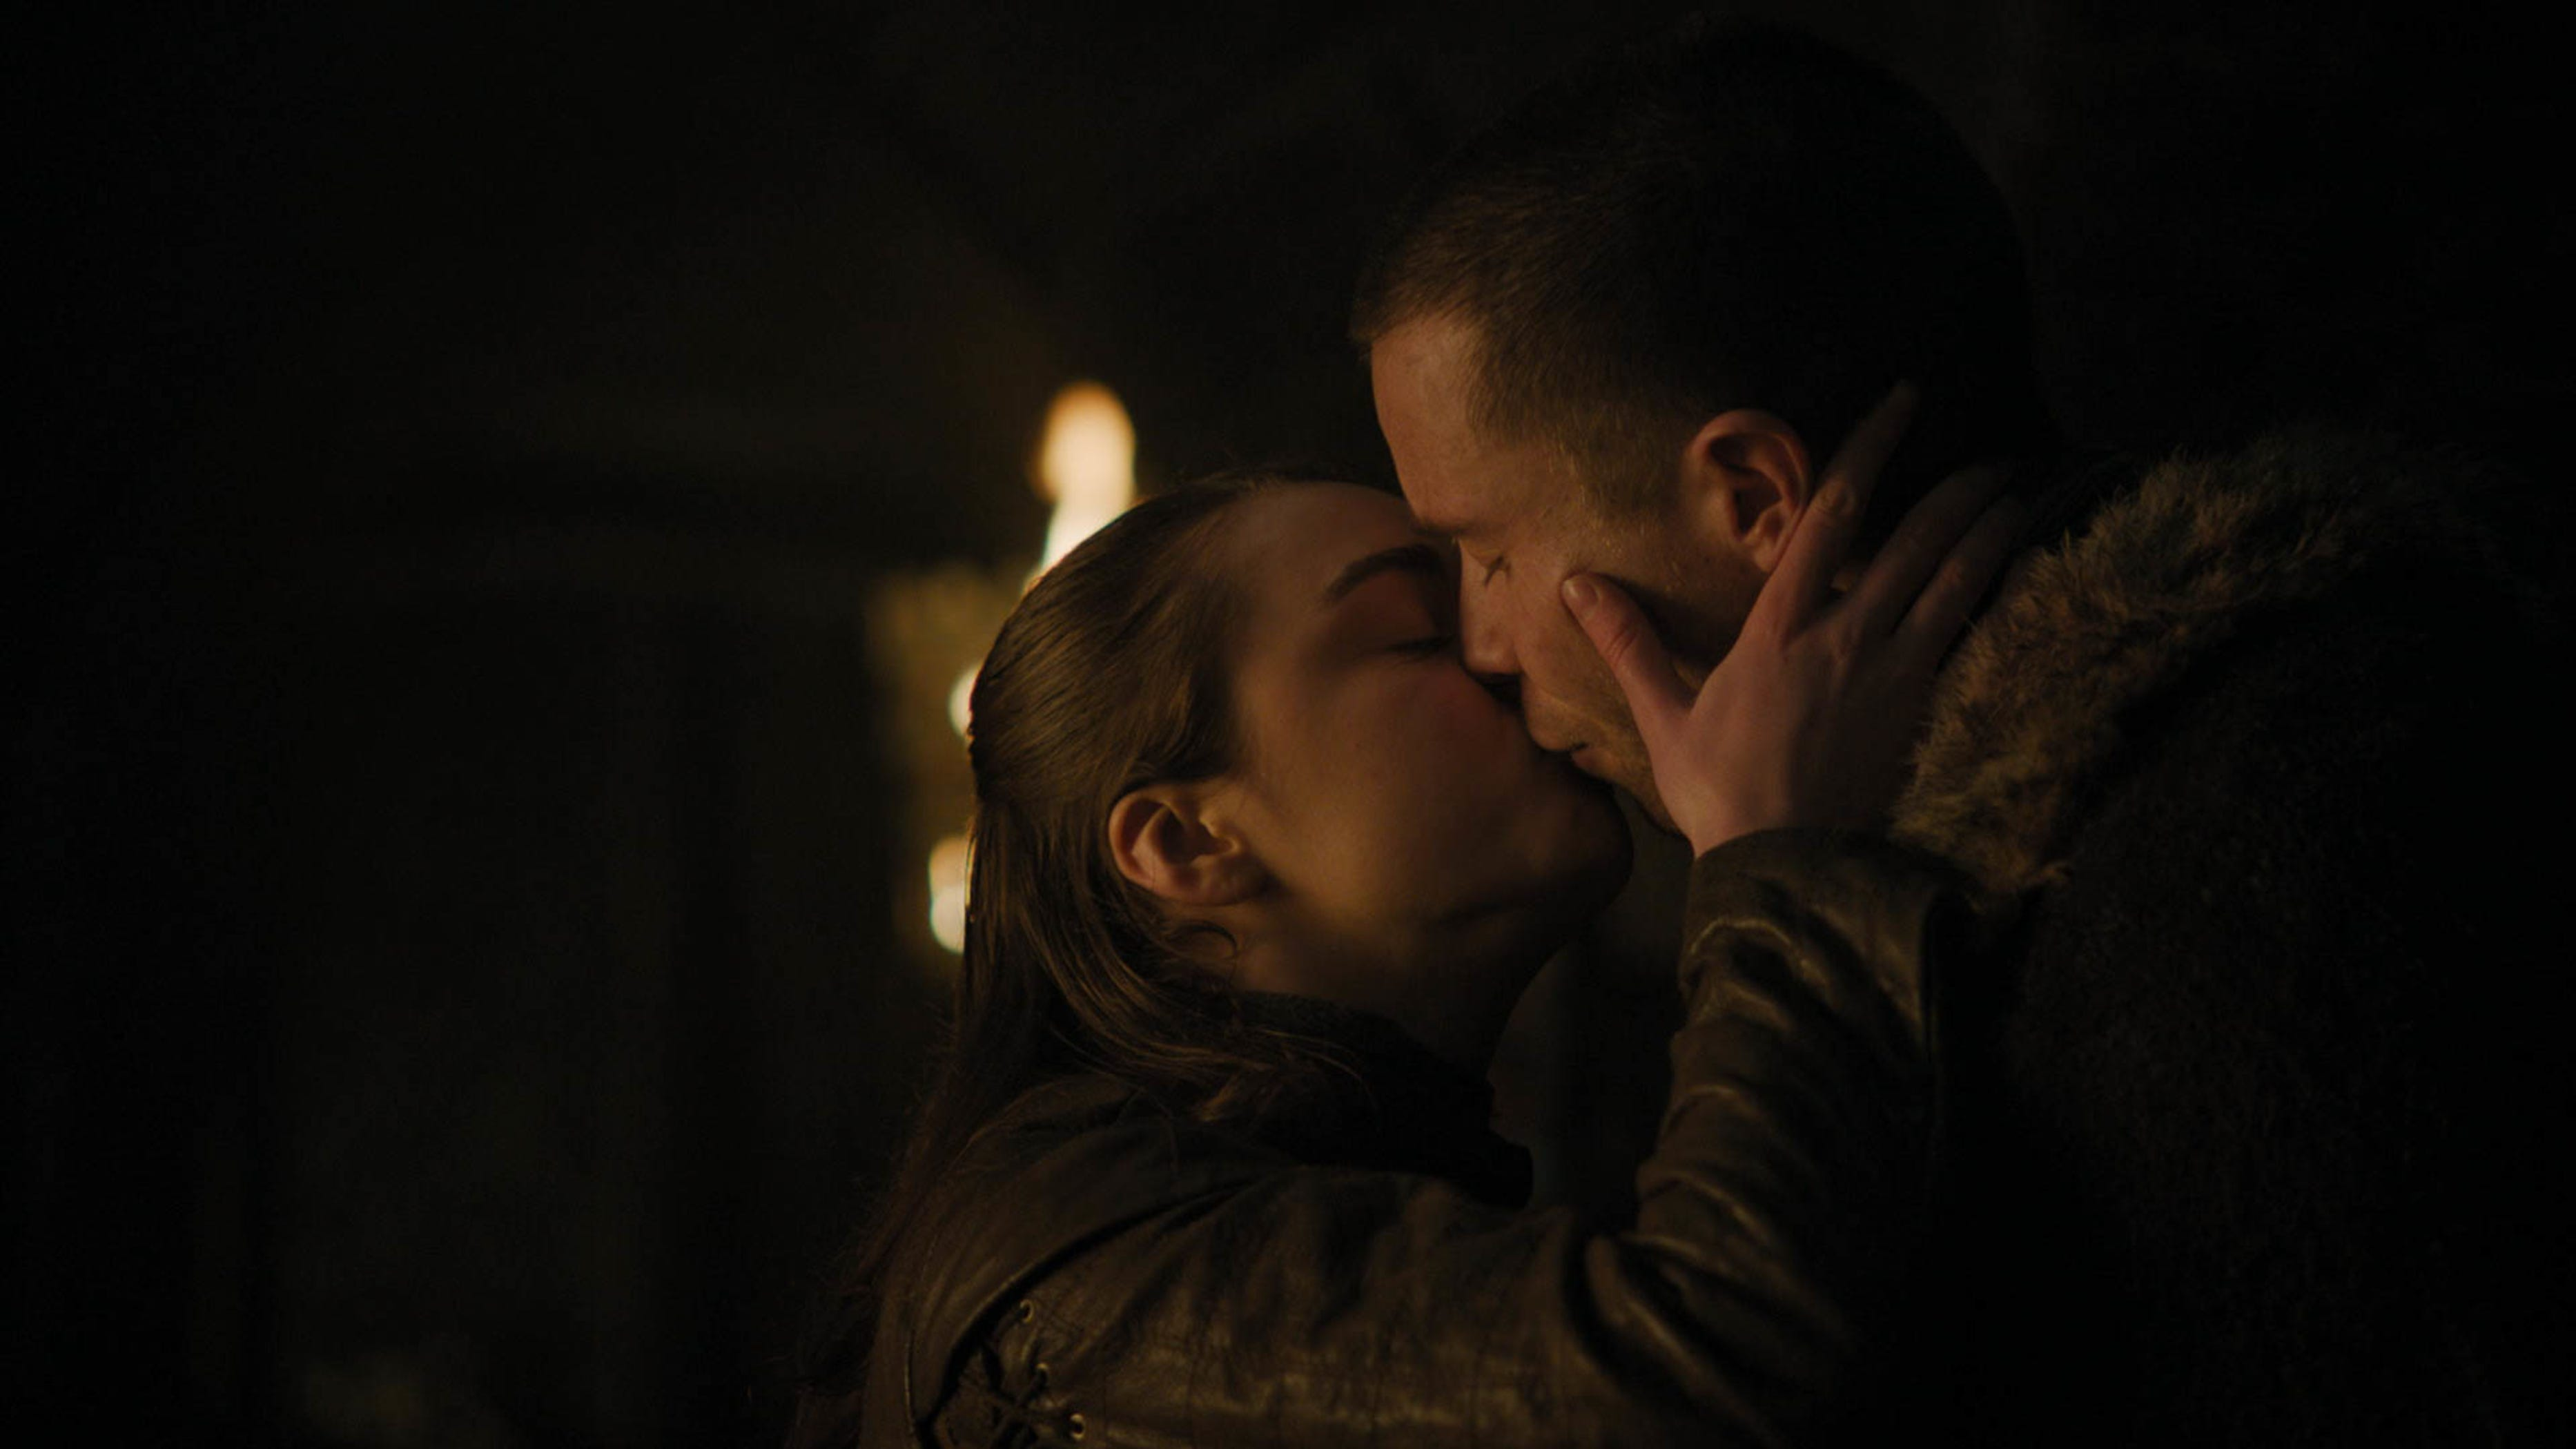 Maisie Williams as Arya Stark, left, and Joe Dempsie as Gendry on 'Game of Thrones.'